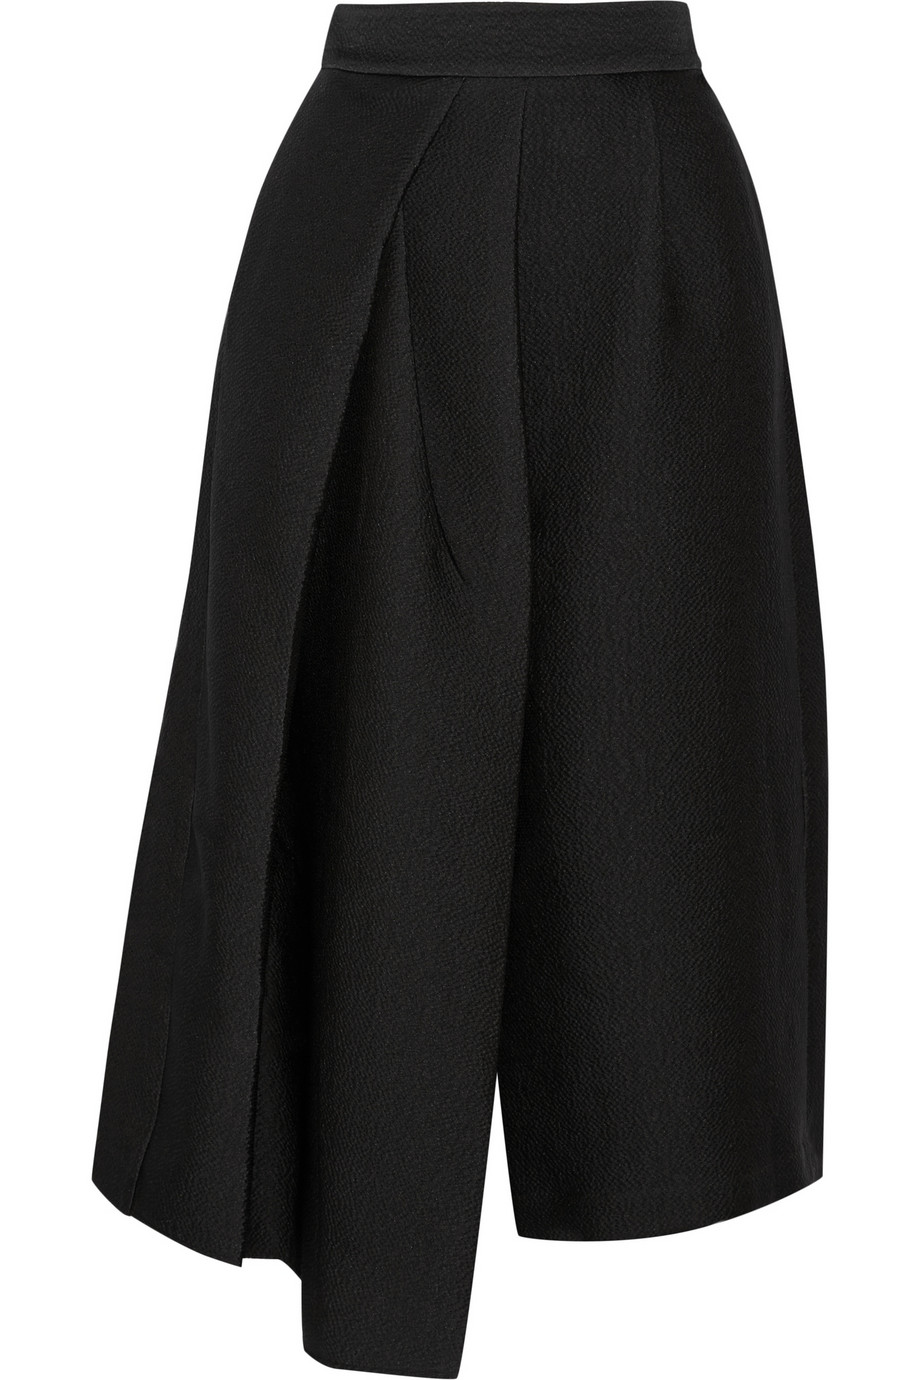 Tibi  culottes - was $650, now $445